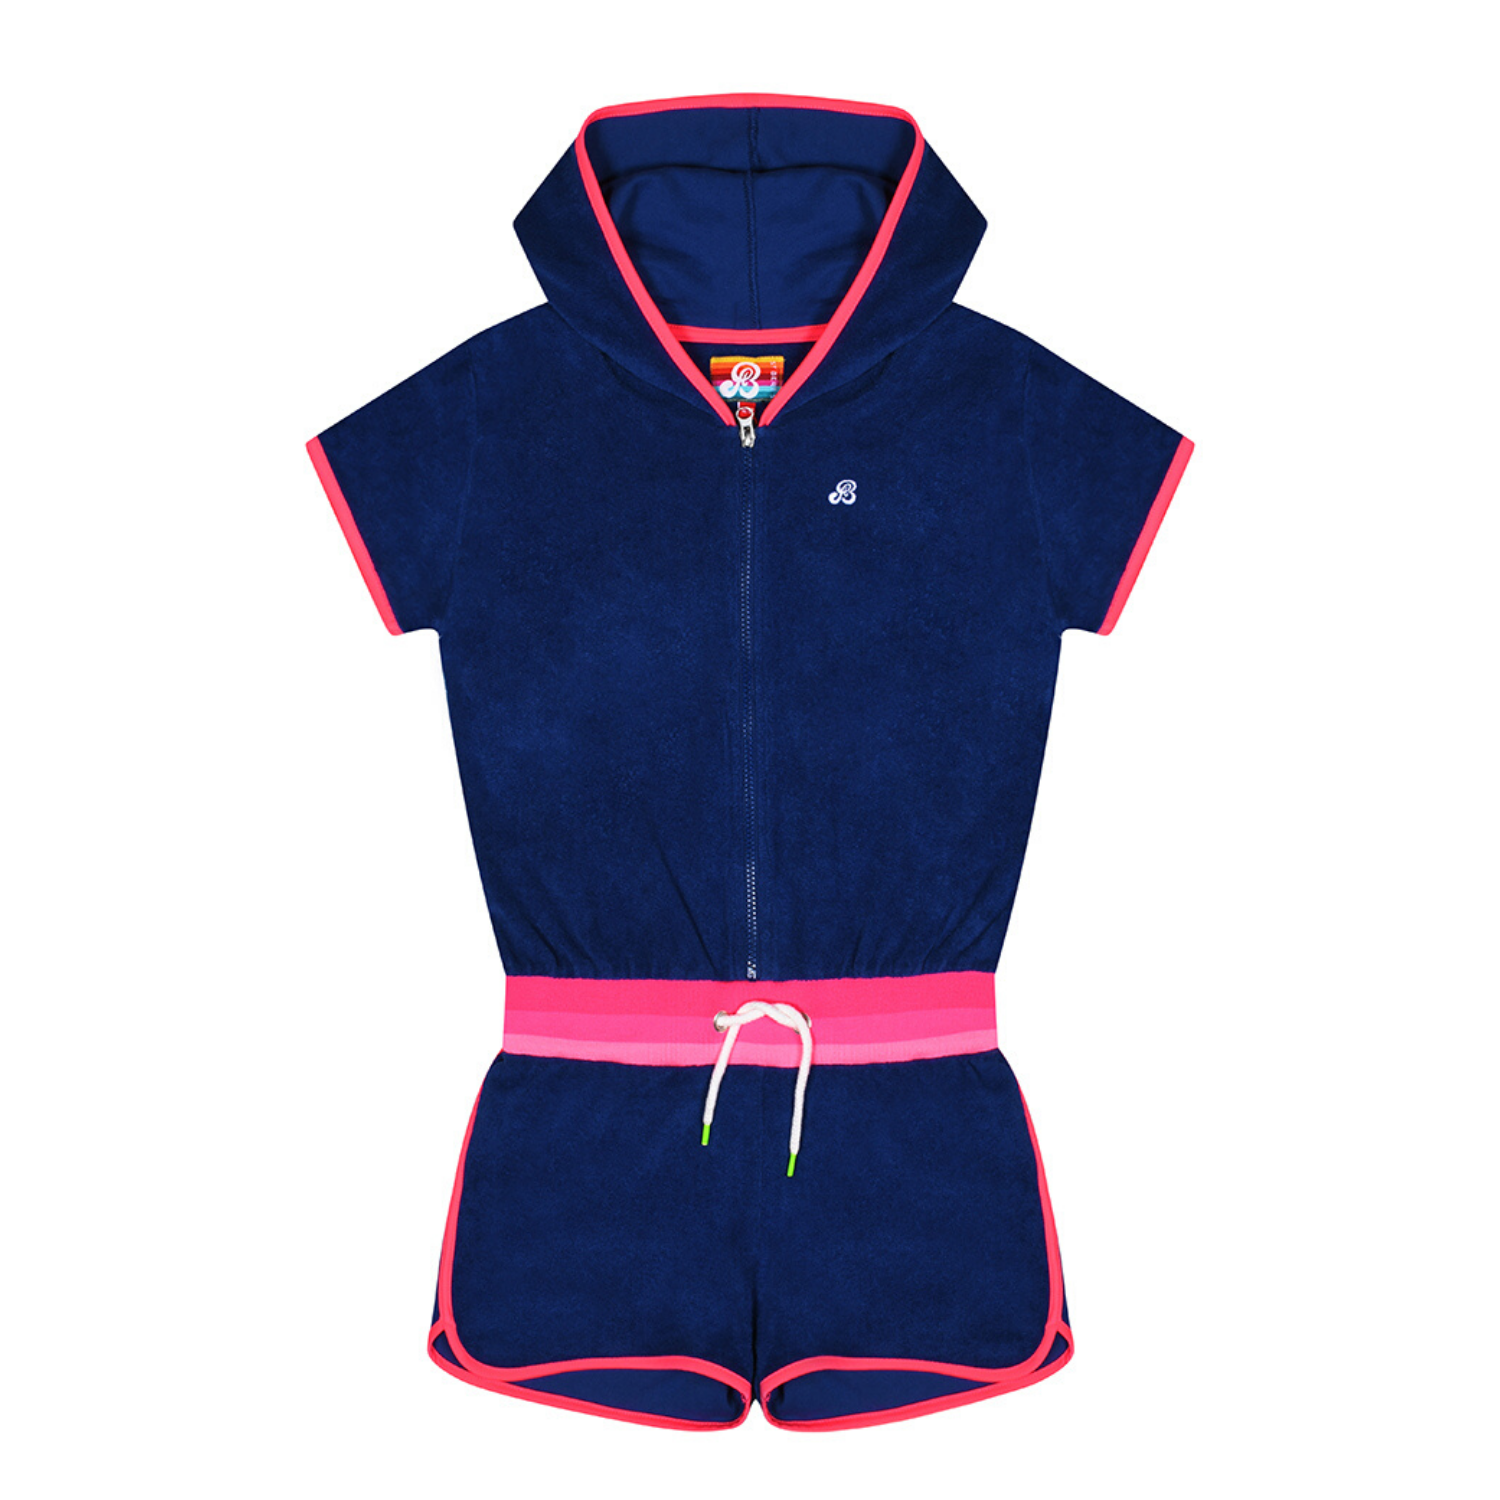 St Bert's Hooded Playsuit - Twilight Blue